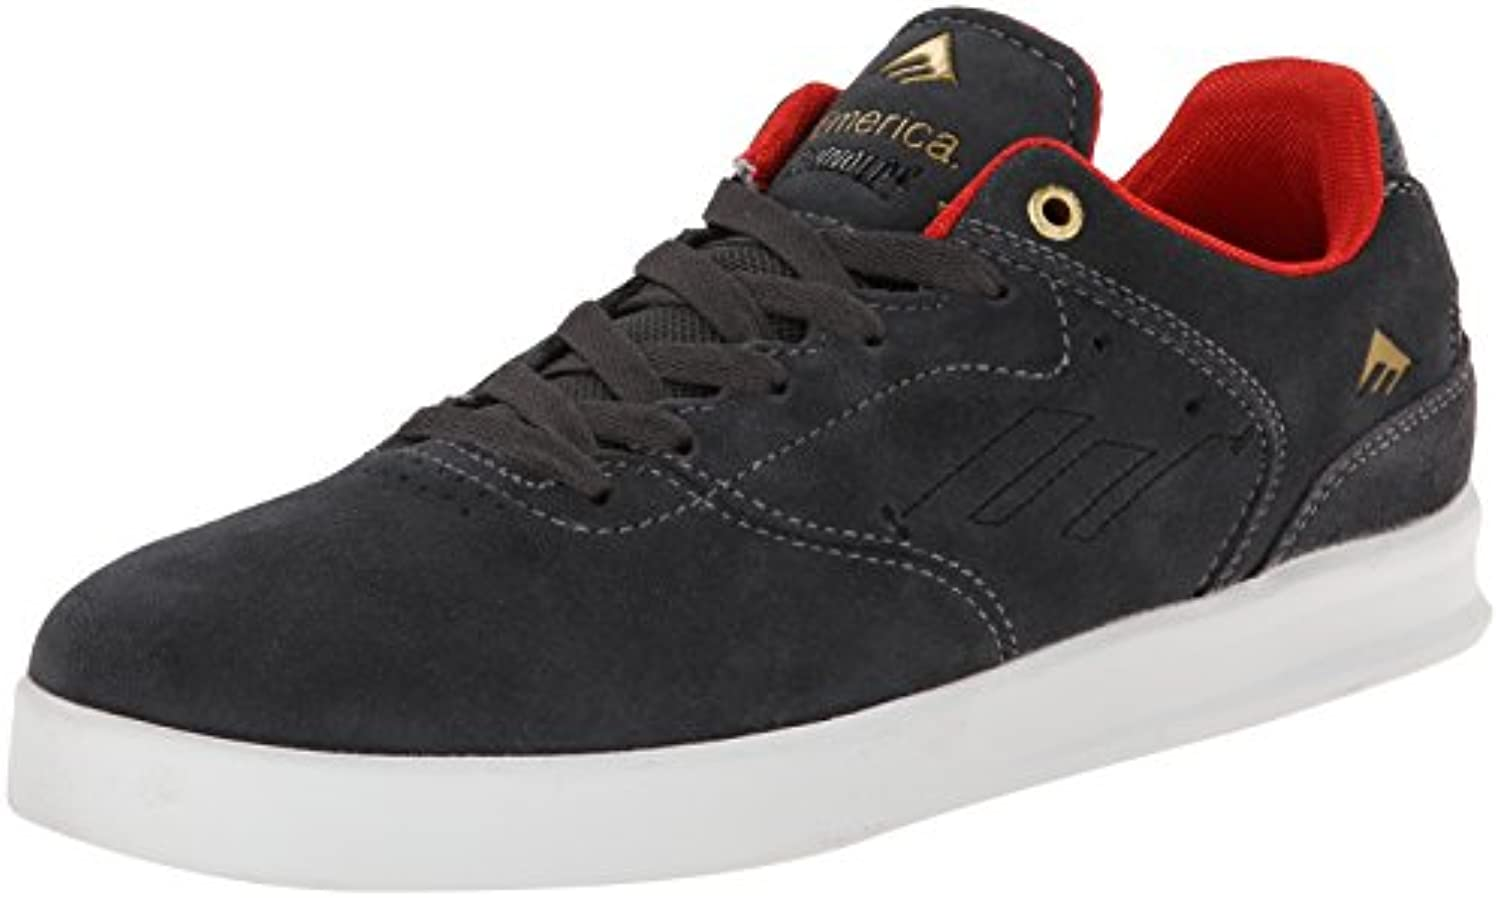 Emerica Shoe THE REYNOLDS LOW dgry  dark grey 8frac12